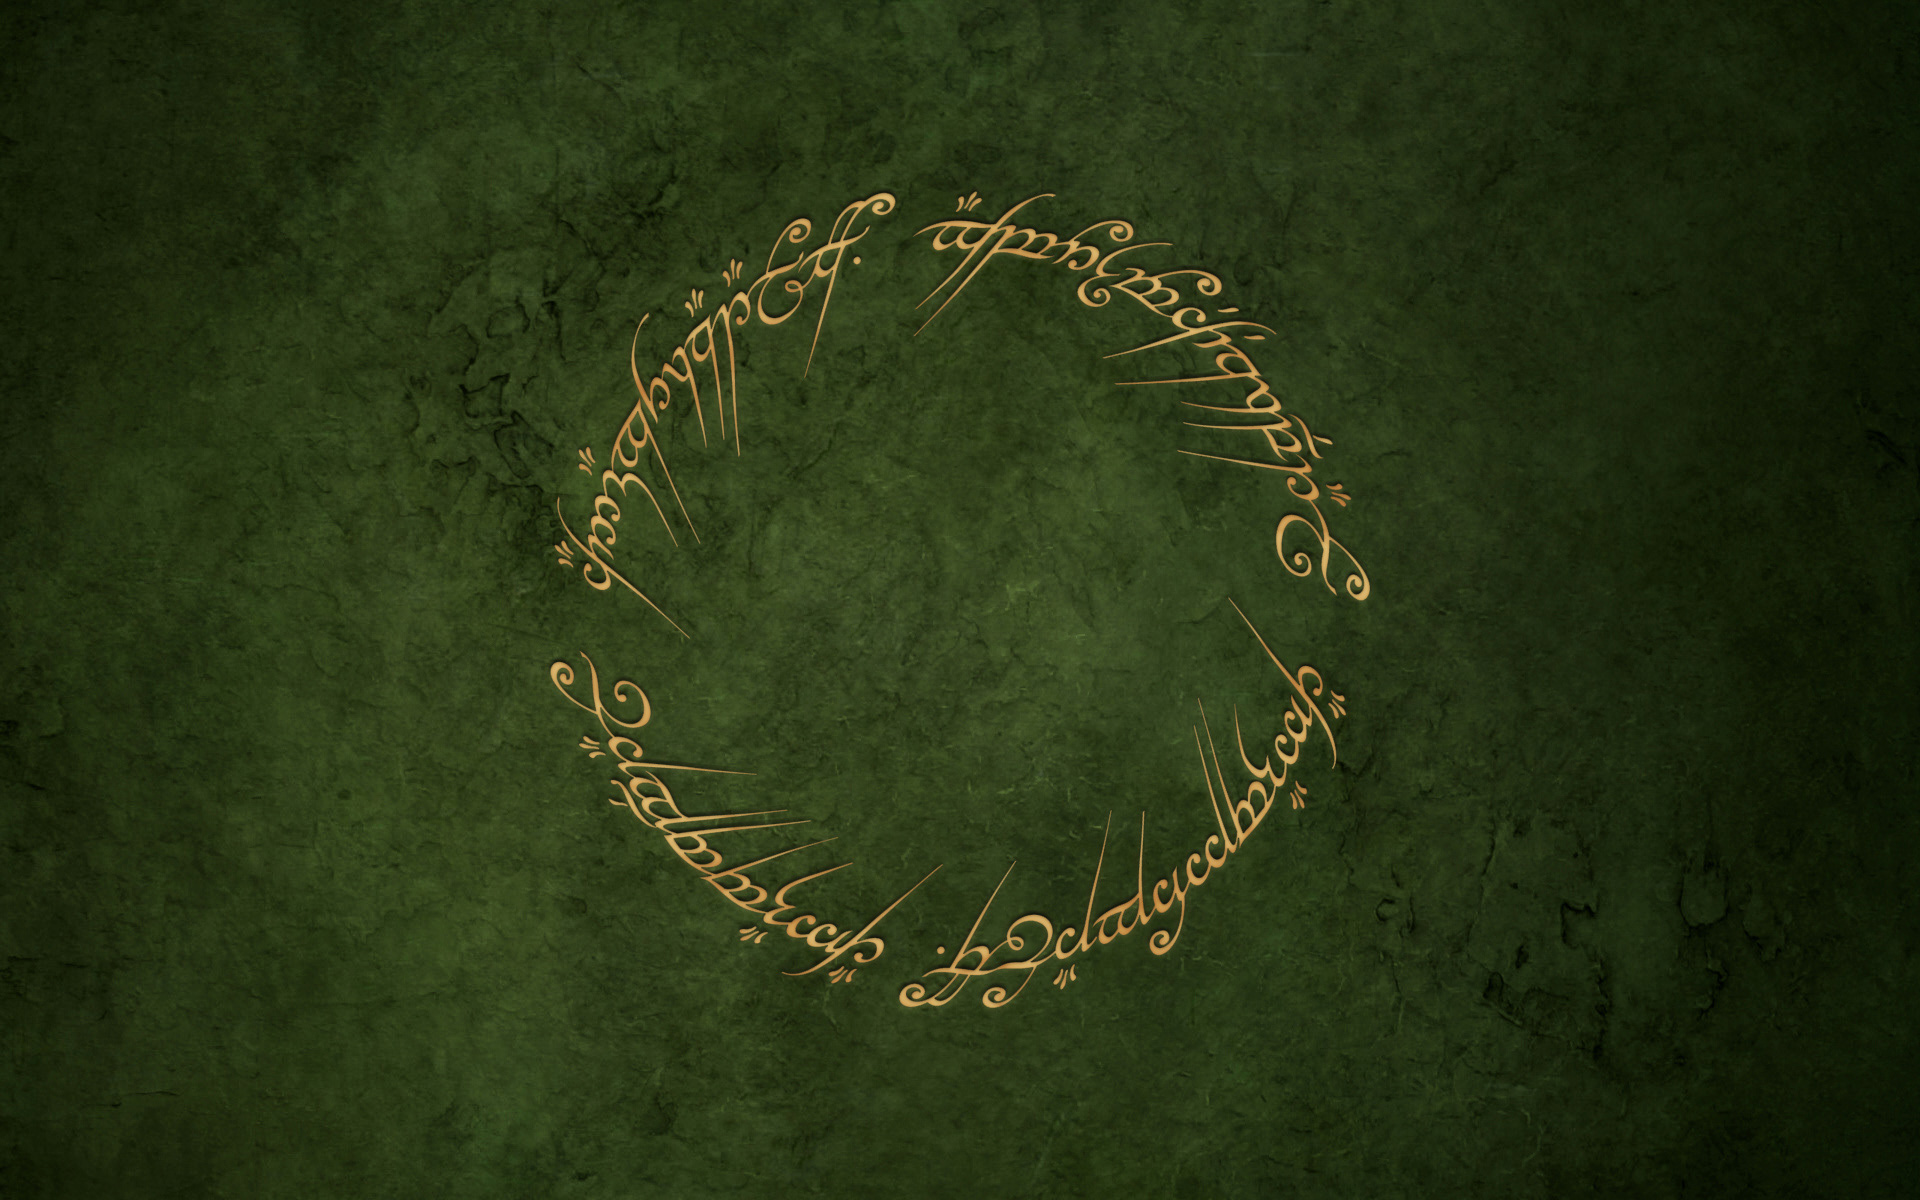 Lord Of The Rings Wallpaper for PC | Full HD Pictures